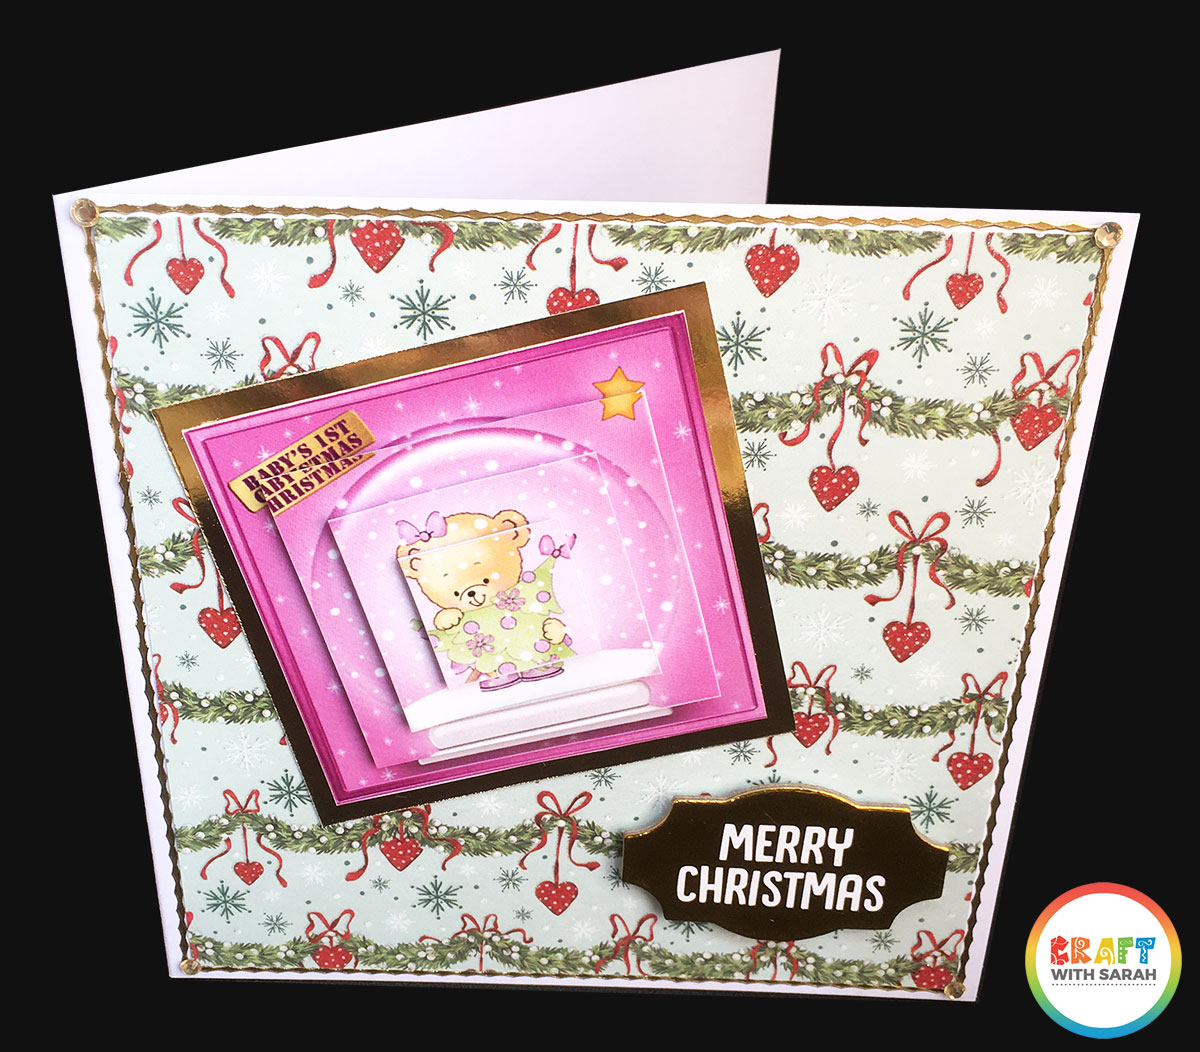 Pyramage card for baby's first Christmas